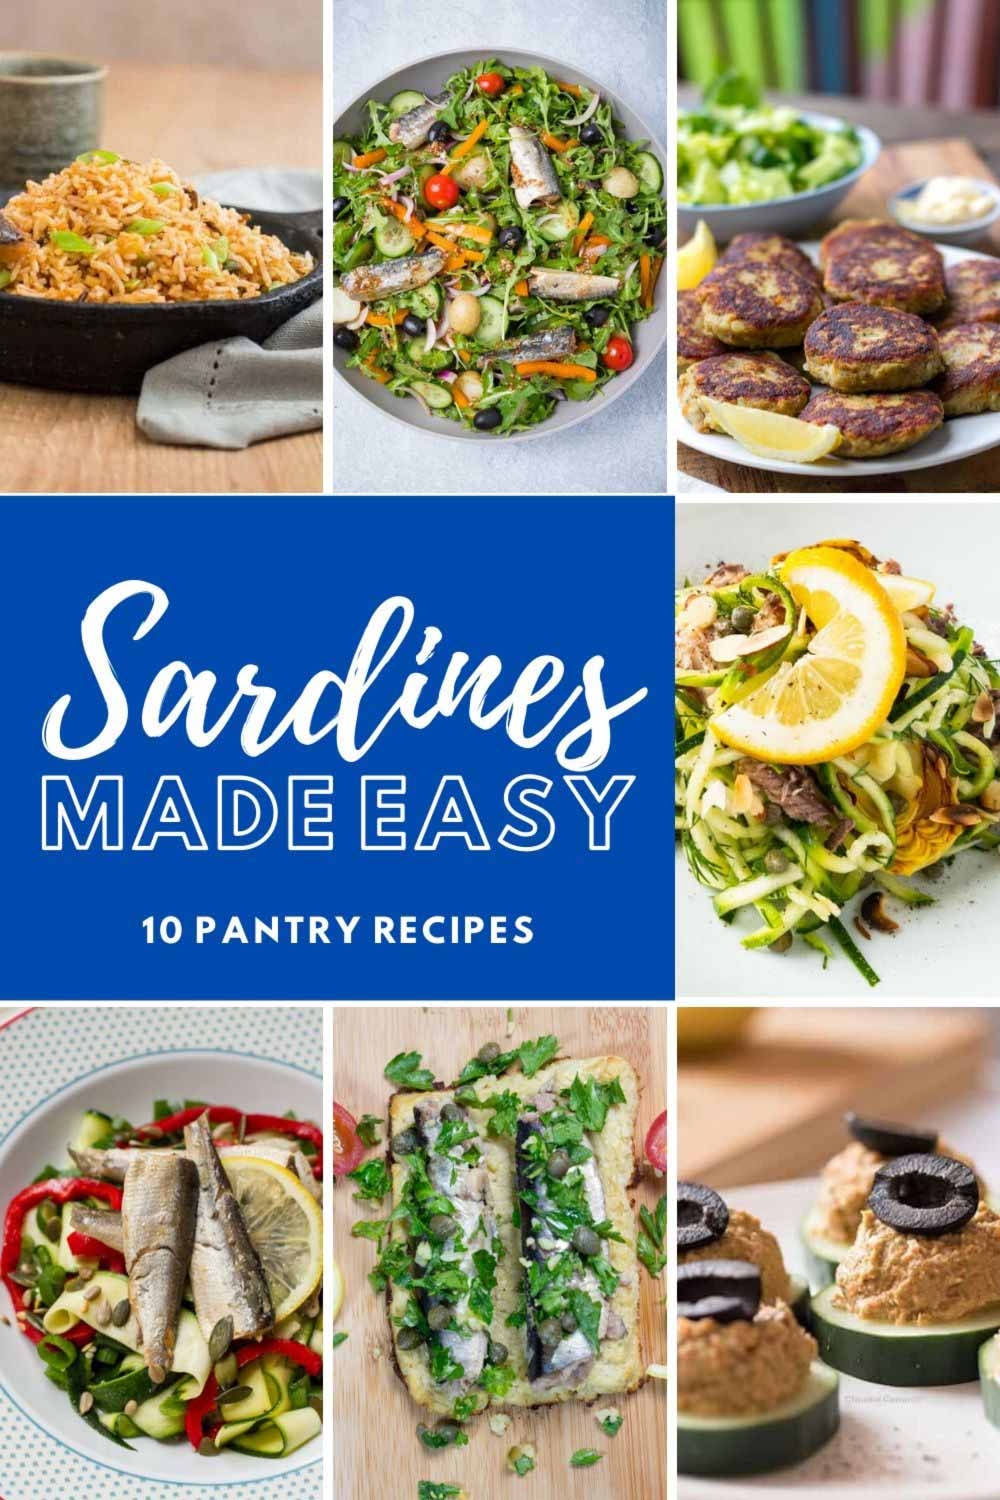 All About Sardines + 10 Easy Recipes